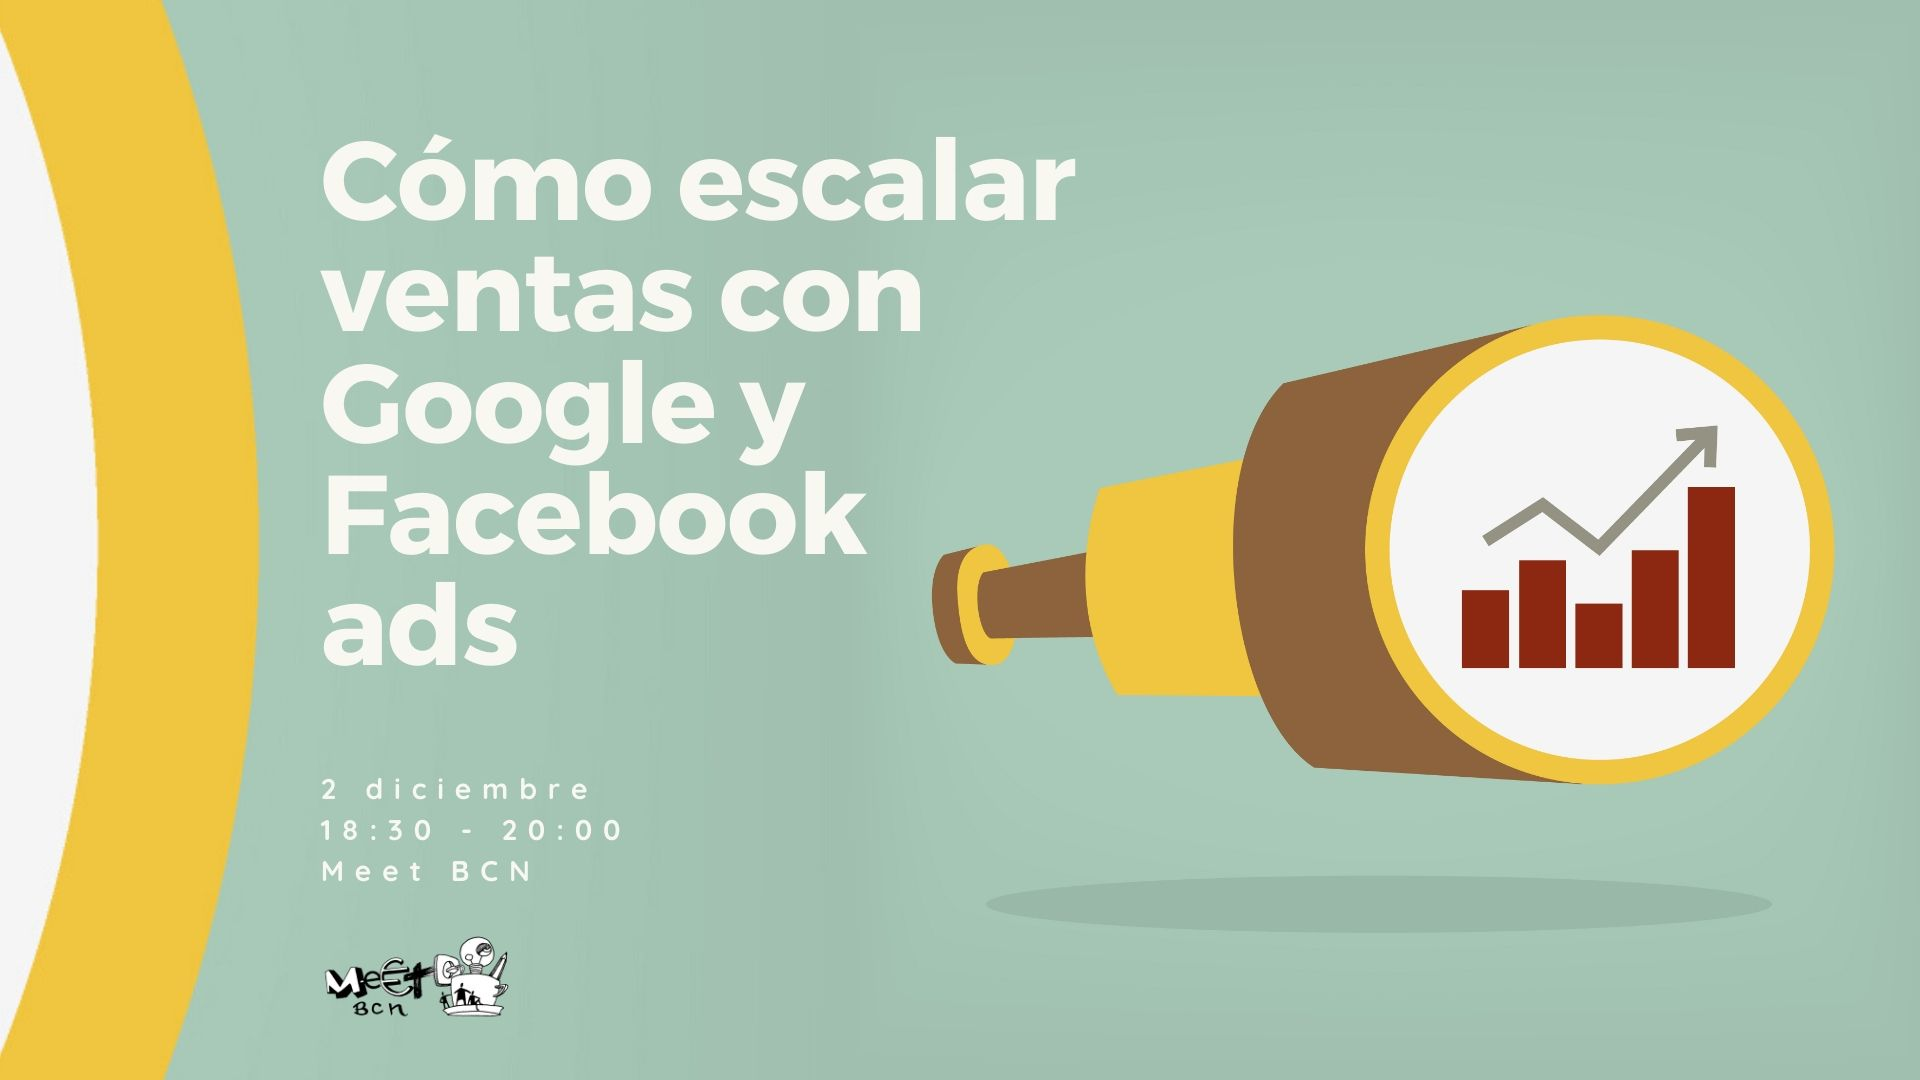 escalar ventas con Google y Facebook ads